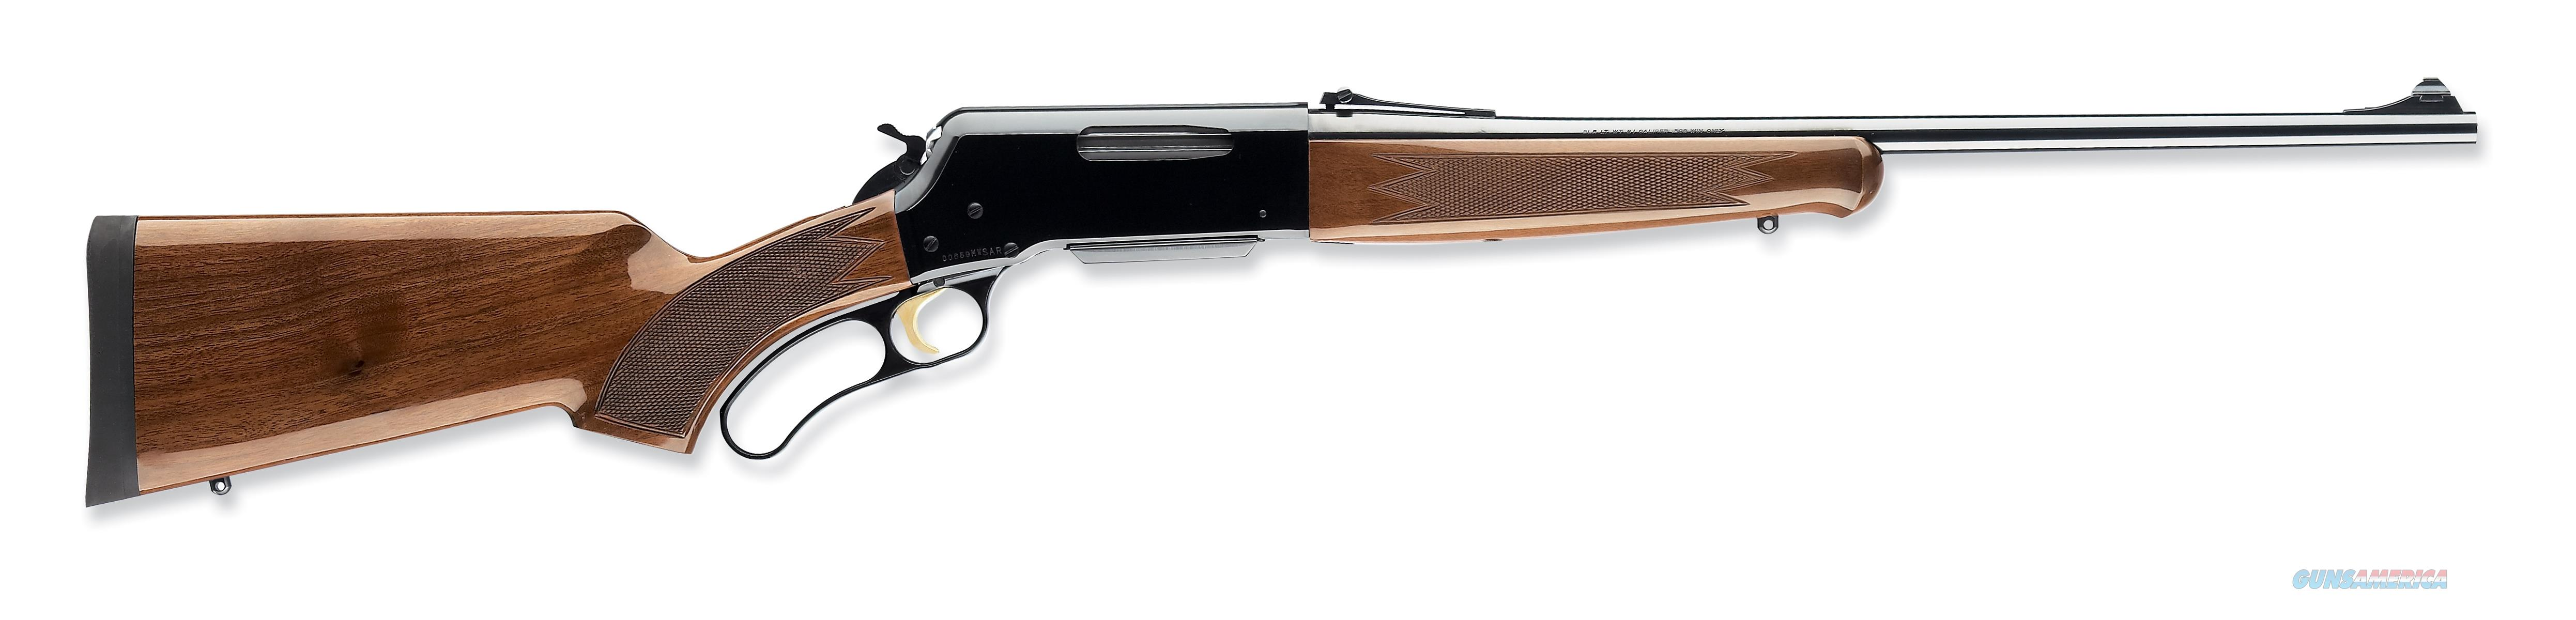 "Browning BLR Lightweight PG .243 Win 20"" 034009111   Guns > Rifles > Browning Rifles > Lever Action"